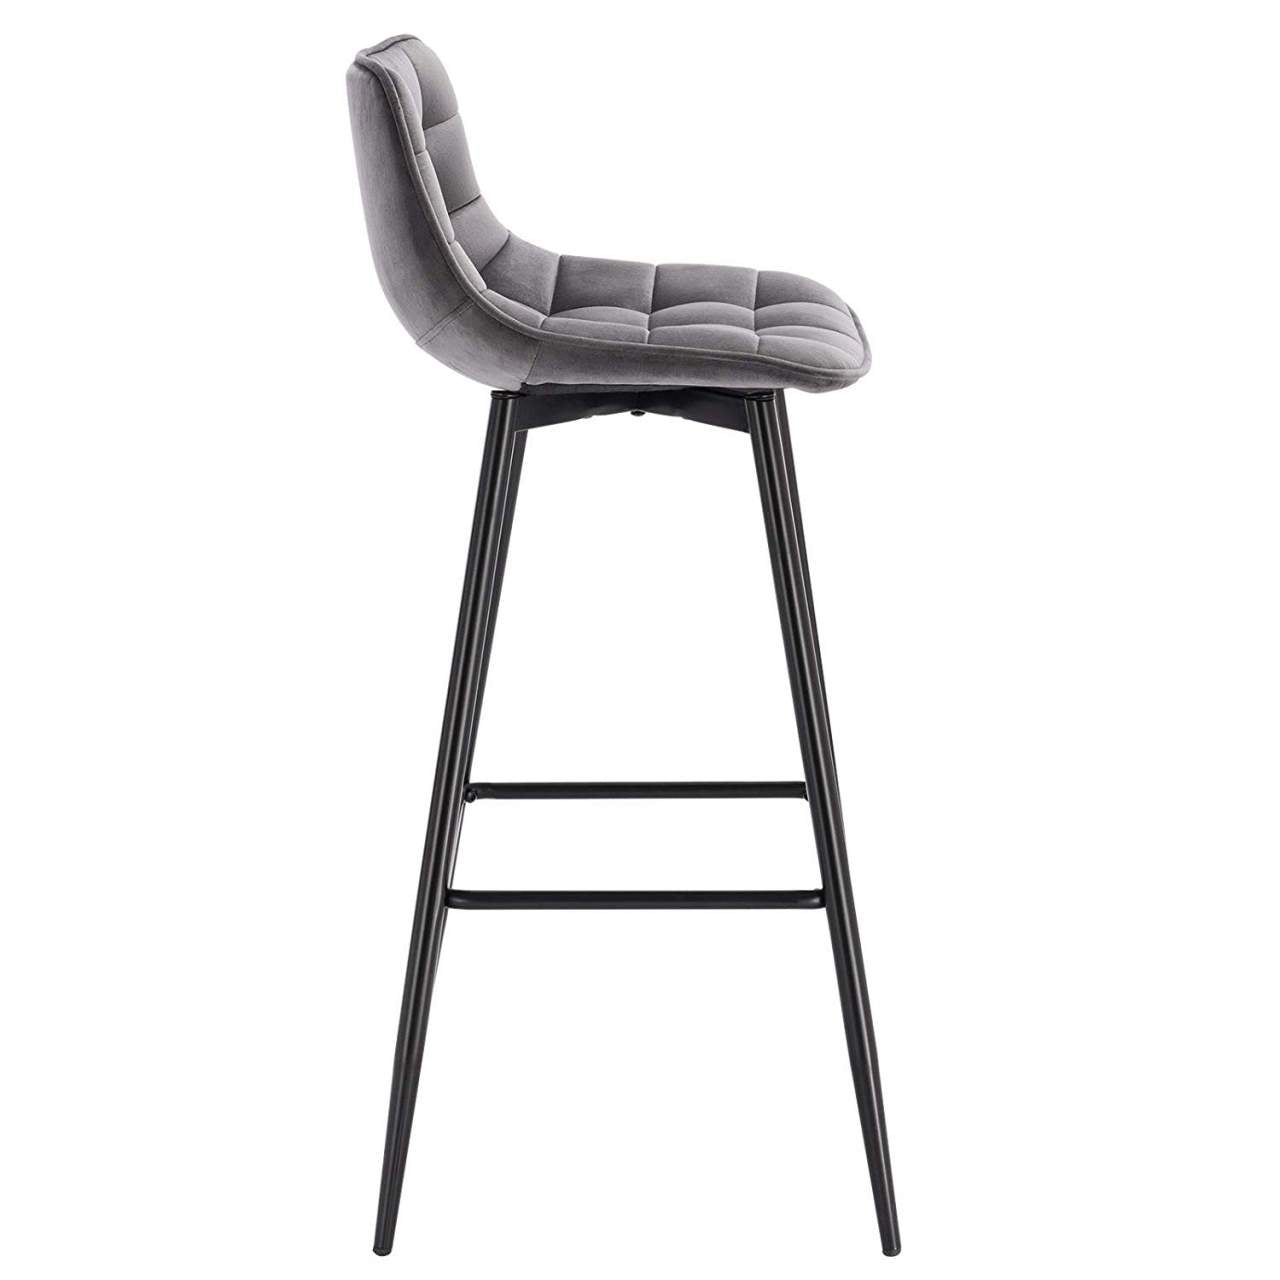 Tatiana Set of 2 Grey Velvet Bar Stools